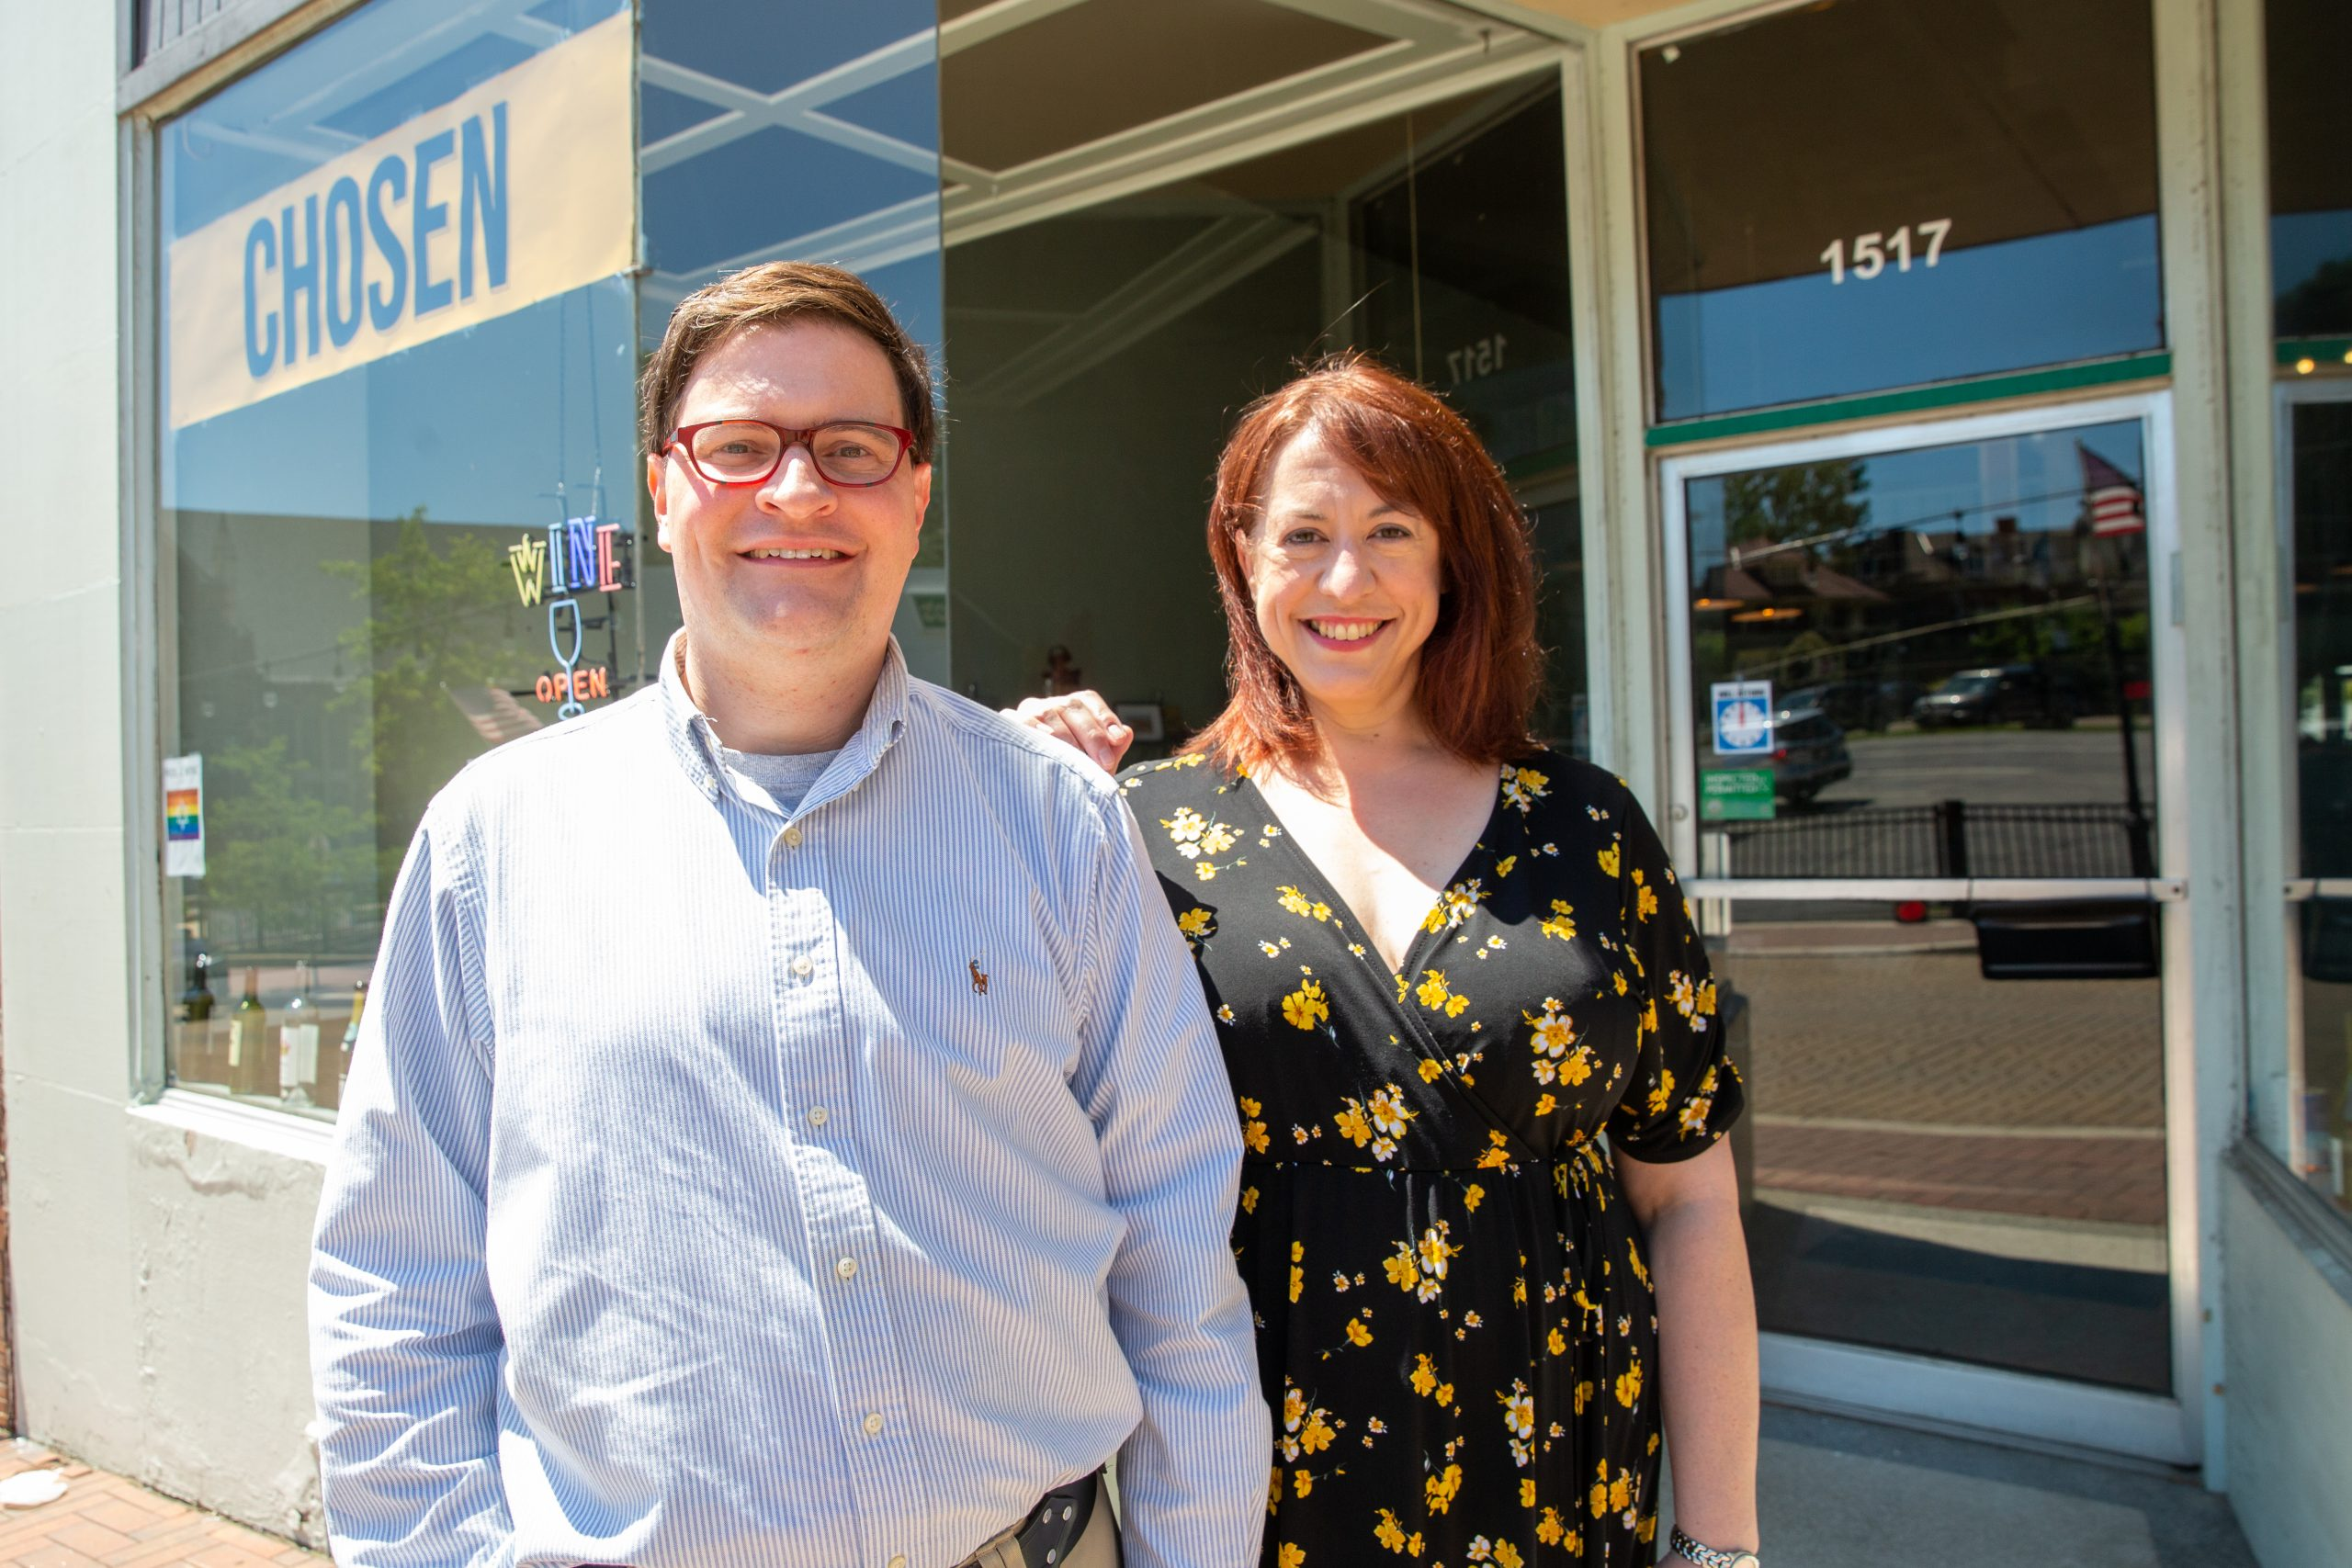 Curt Friehs and Cynthia Craig stand, smiling, outside their storefront.